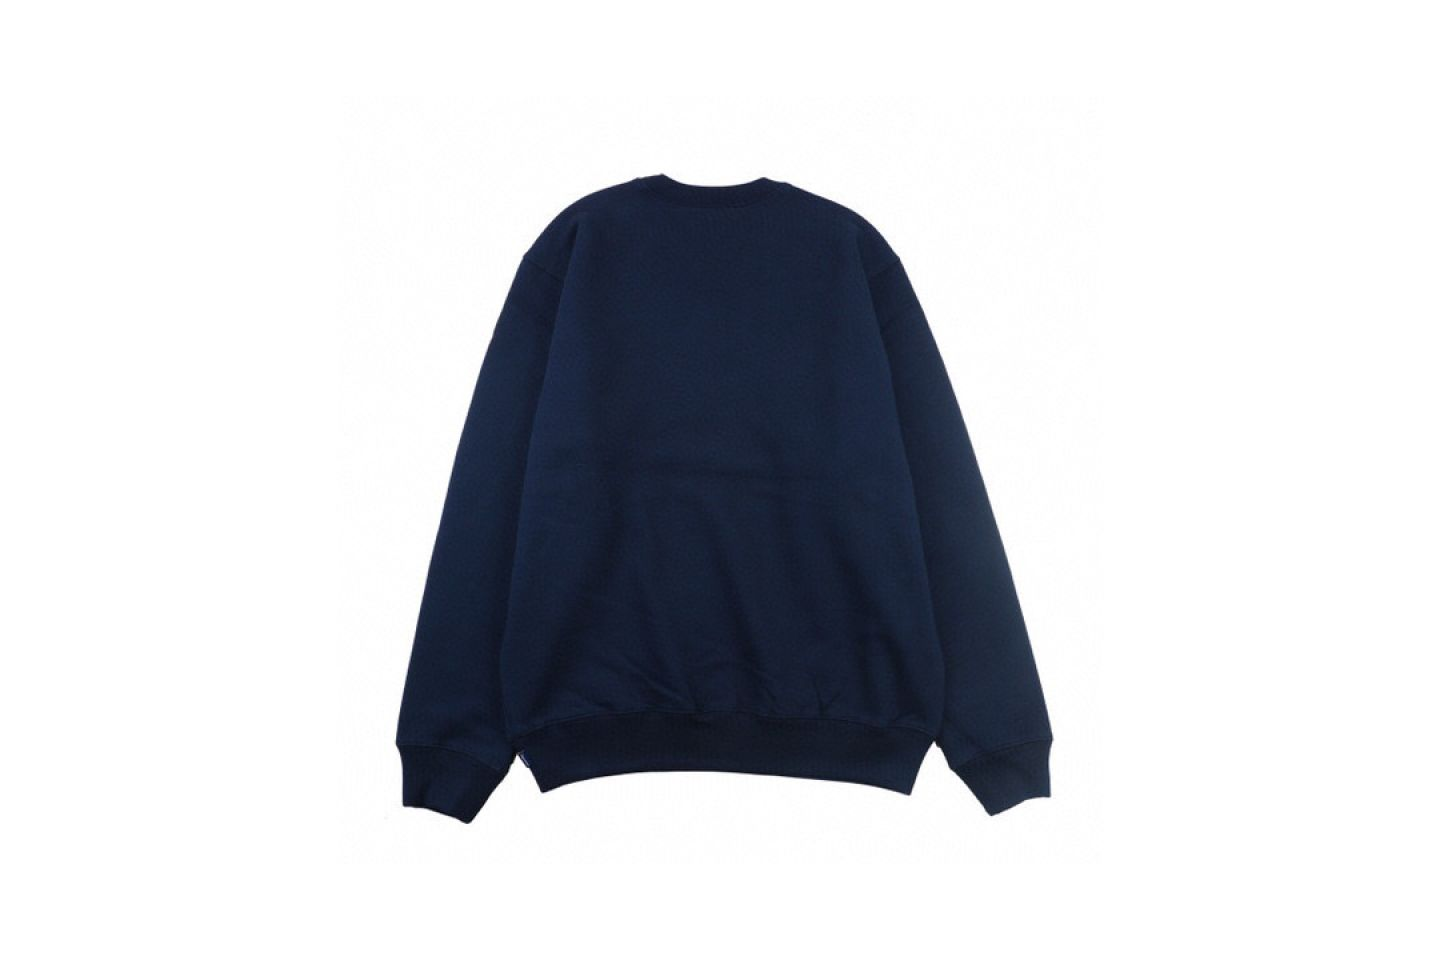 "Shirt Supreme crew neck sweatshirt with underlined logo ""Navy Blue"" 5 supreme_crew_neck_sweatshirt_with_underlined_logo_navy_blue_5"